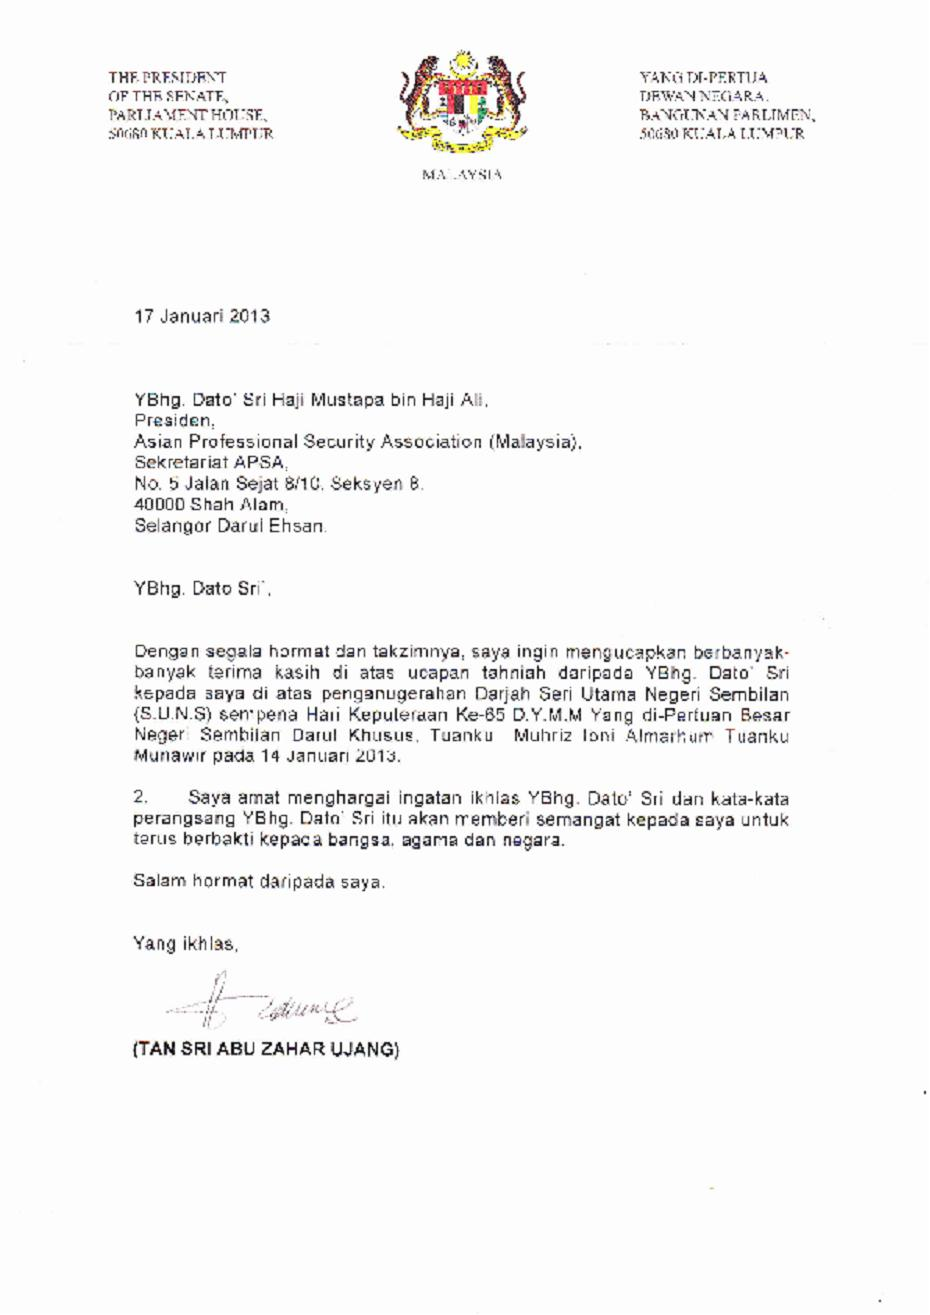 Letter Of Appreciation Or Gratitude From The Corporate